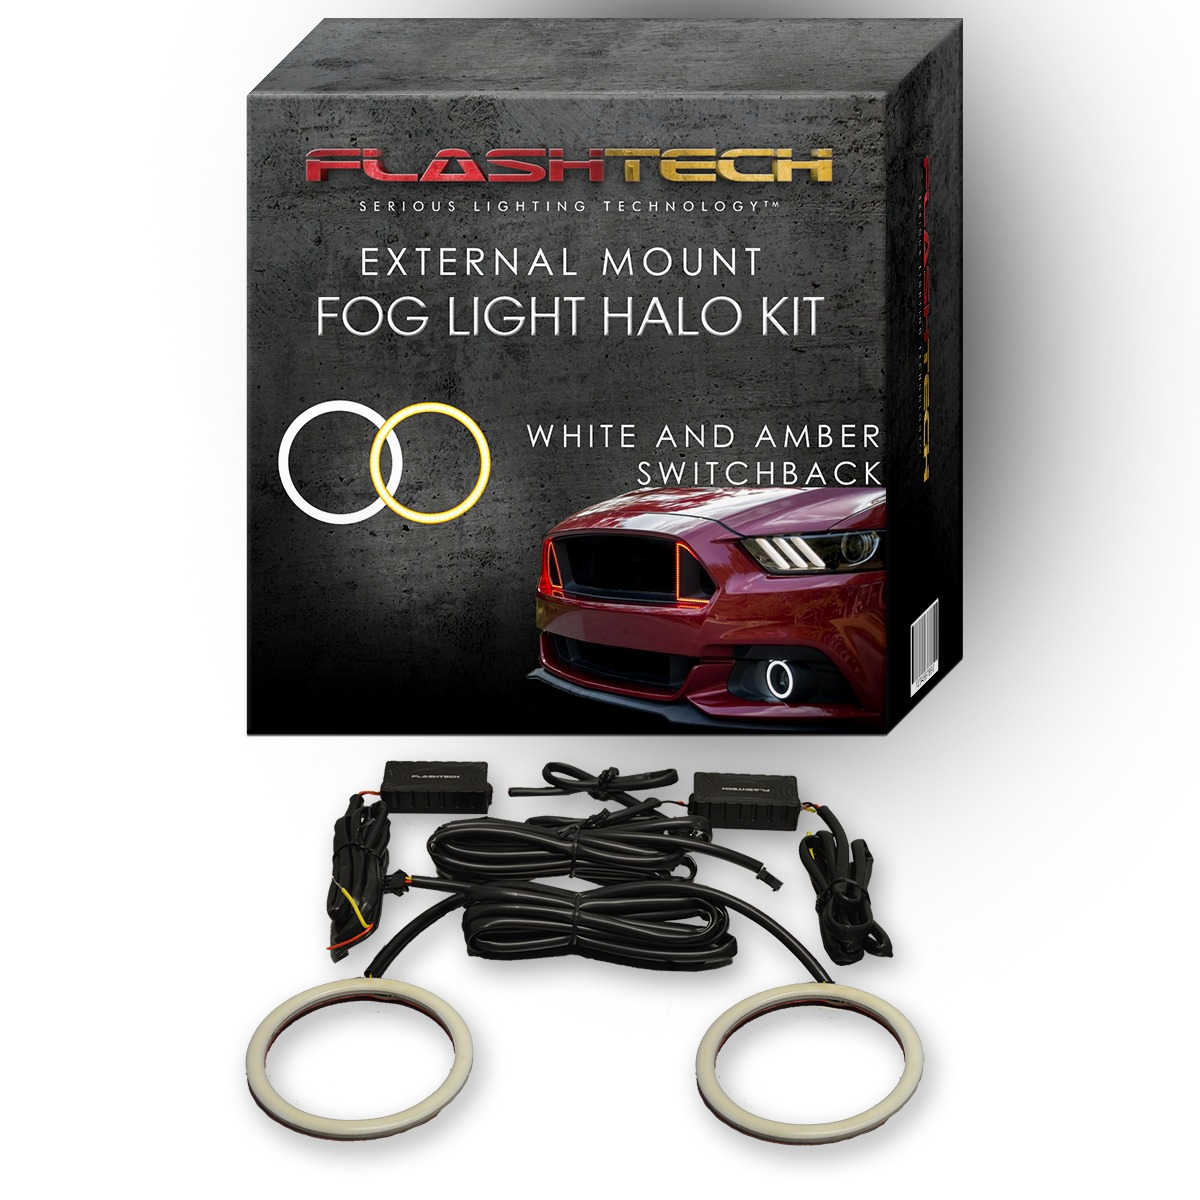 Chevrolet Camaro External Waterproof White & Amber Switchback LED halo Fog Light Kit 2010-2013